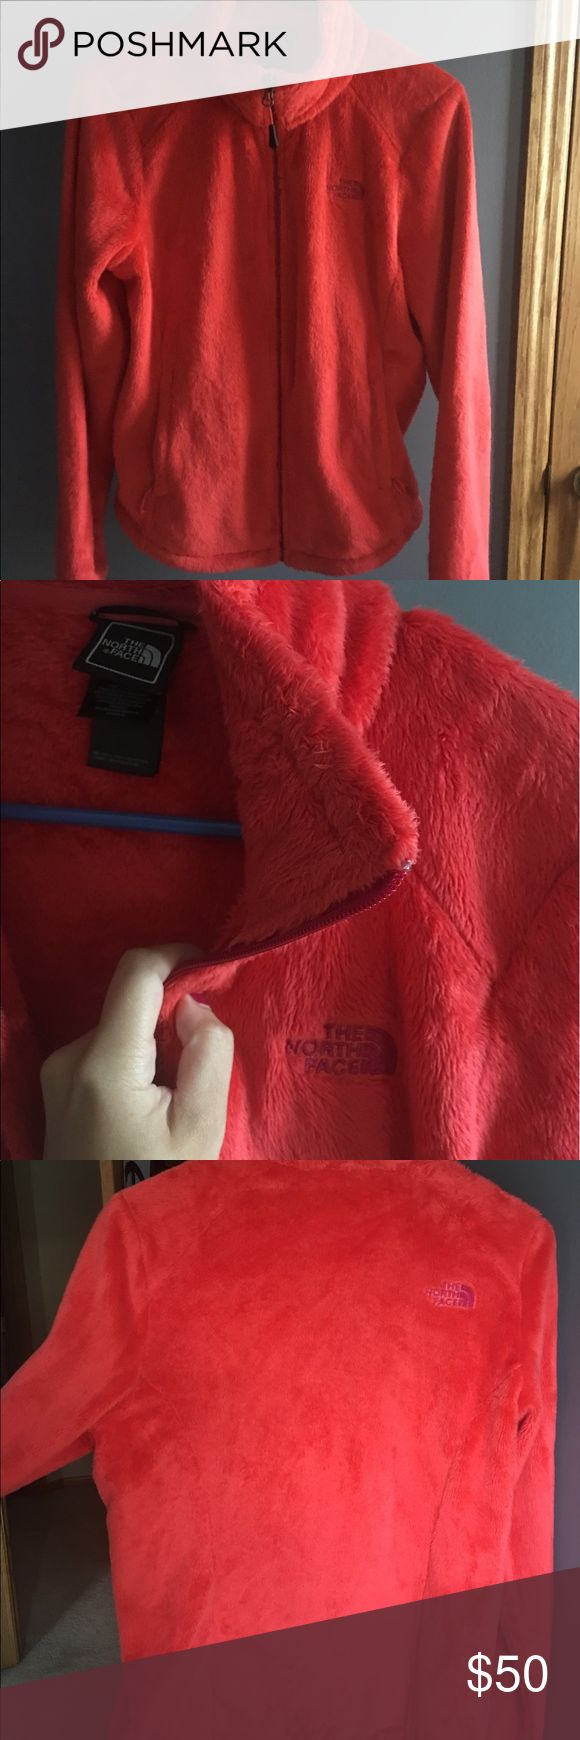 Red North Face fleece zip up Never worn! Super great condition The North Face Jackets & Coats Puffers